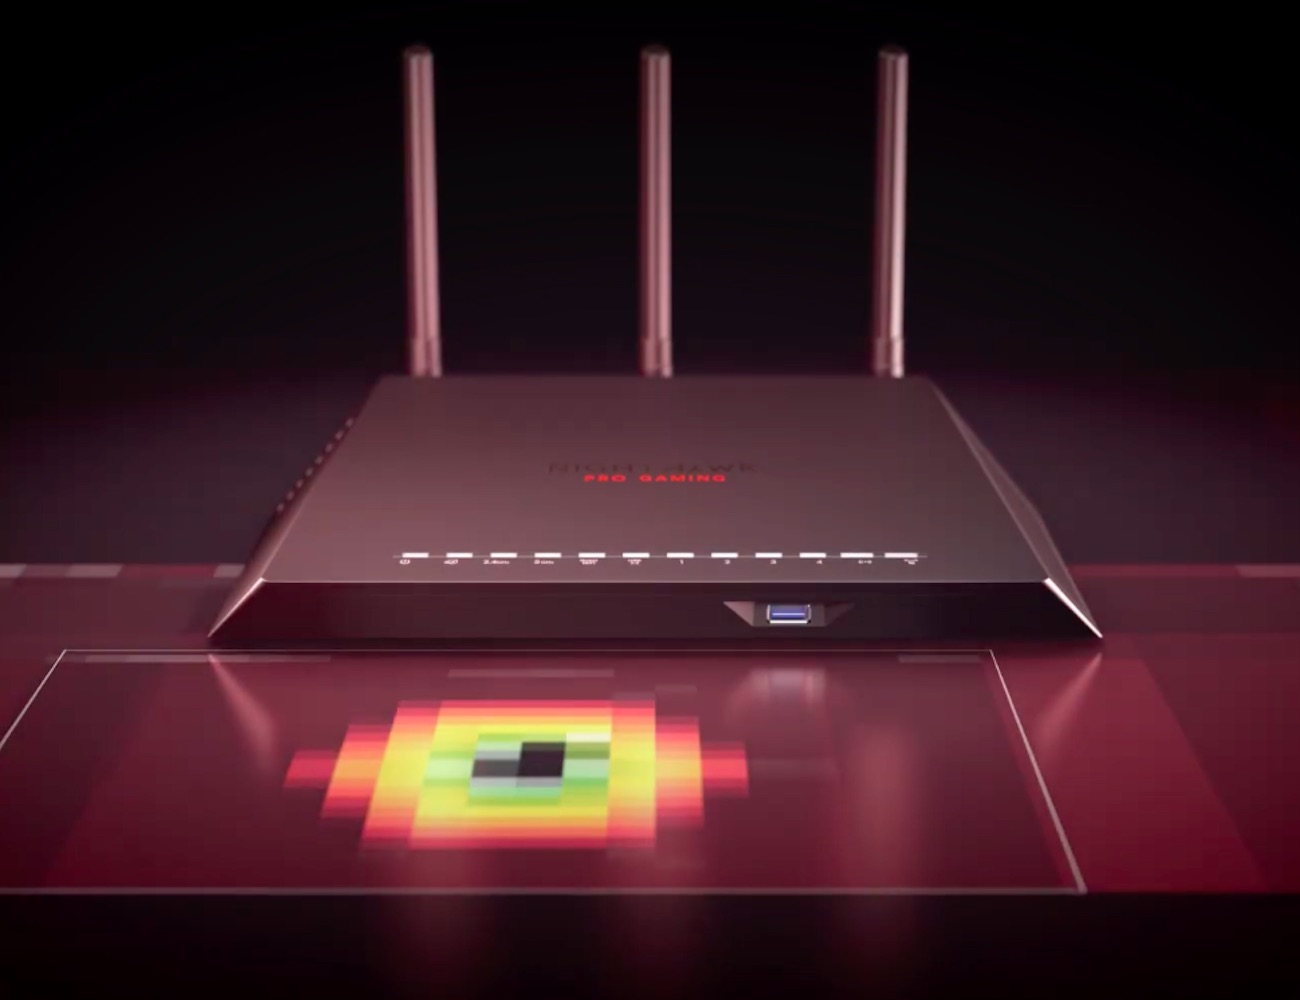 NETGEAR XR300 Nighthawk Pro Gaming Wi-Fi Router improves online gaming